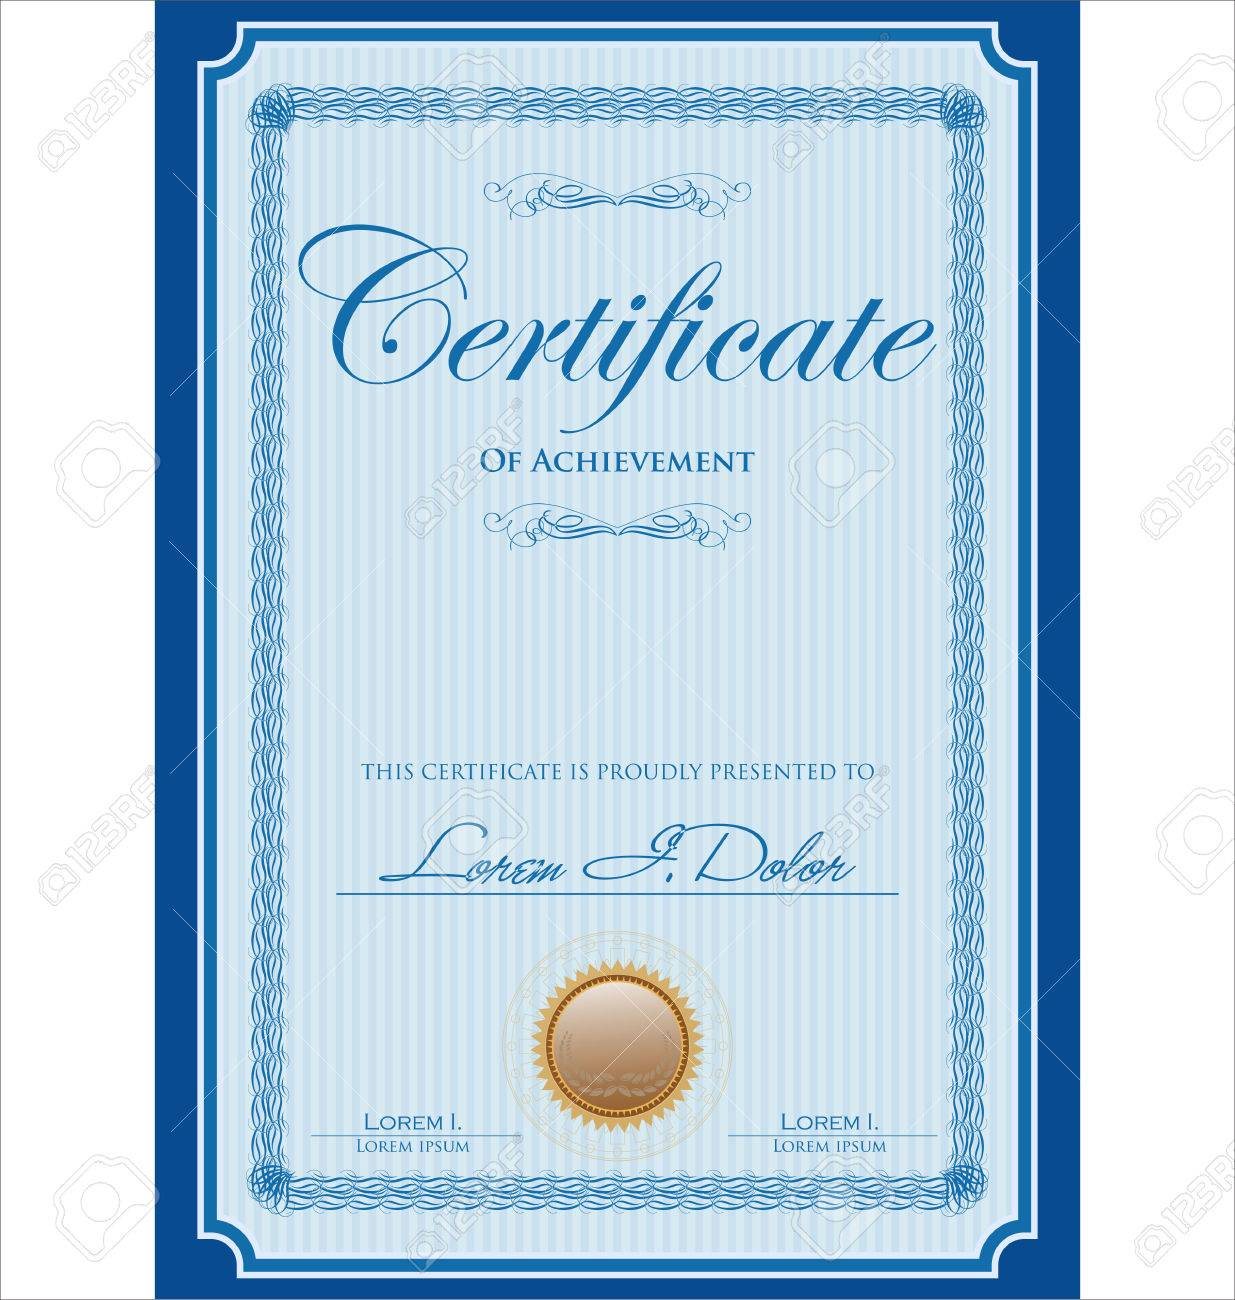 Blue certificate or diploma template royalty free cliparts blue certificate or diploma template stock vector 48490398 xflitez Images